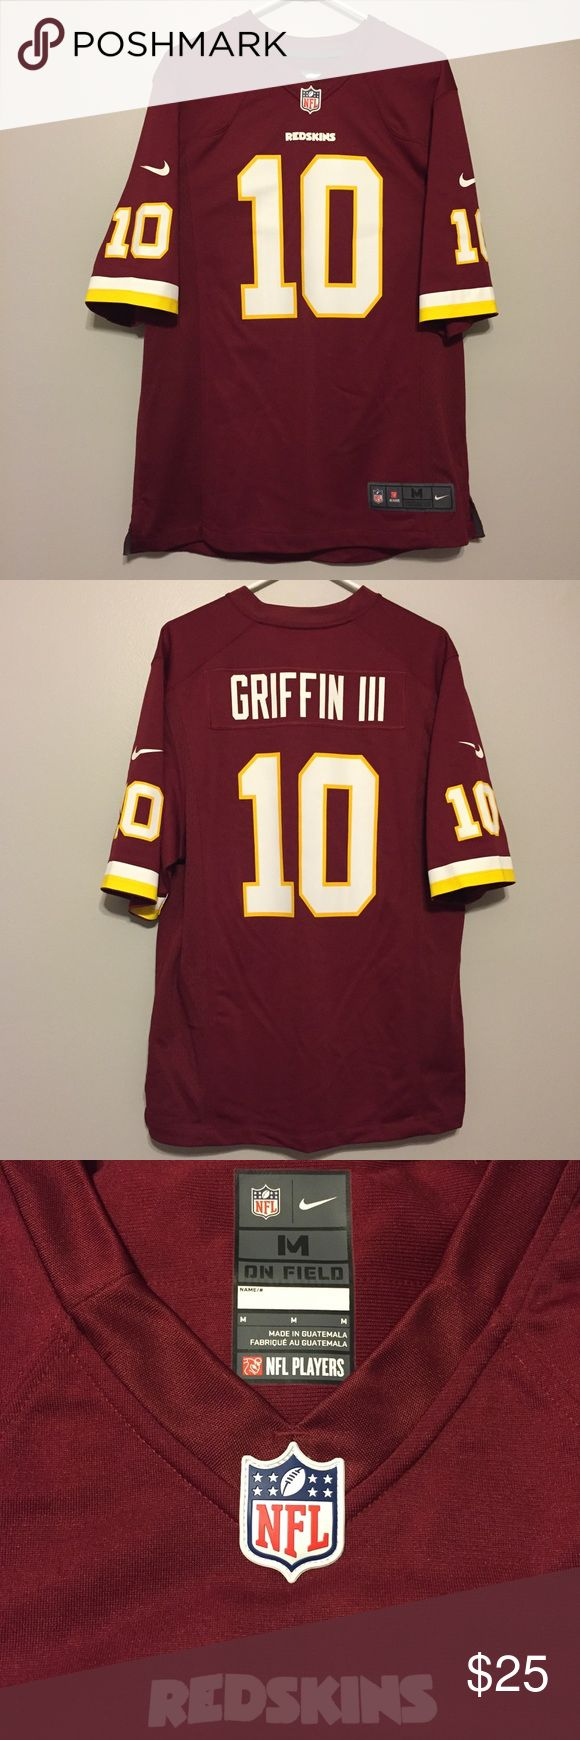 Authentic NFL Redskins Jersey RG3 Robert Griffin III Redskins Jersey. Authentic NFL Shop. Men's size Medium. Perfect condition. Nike Shirts